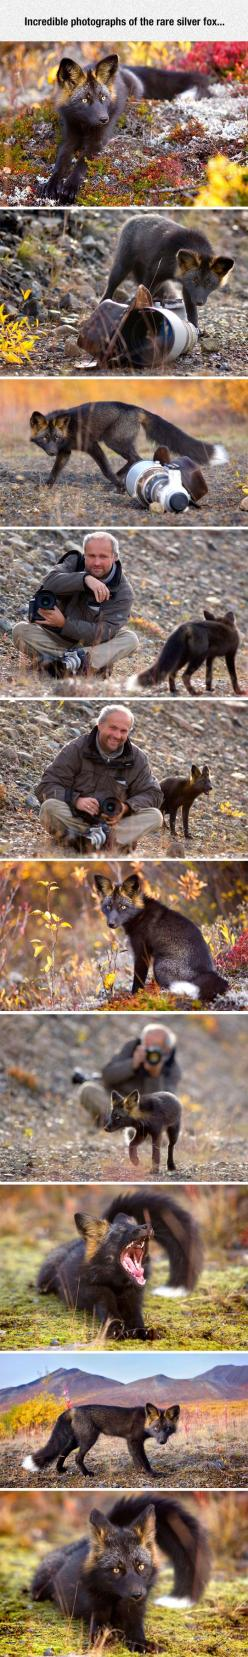 The silver fox is a melanistic form of red fox. Melanism is when the animal's coloring is much darker than normal. Interestingly, fox squirrels, who have brownish body fur and reddish tummy fur also have a melanistic form that resembles this. I had a